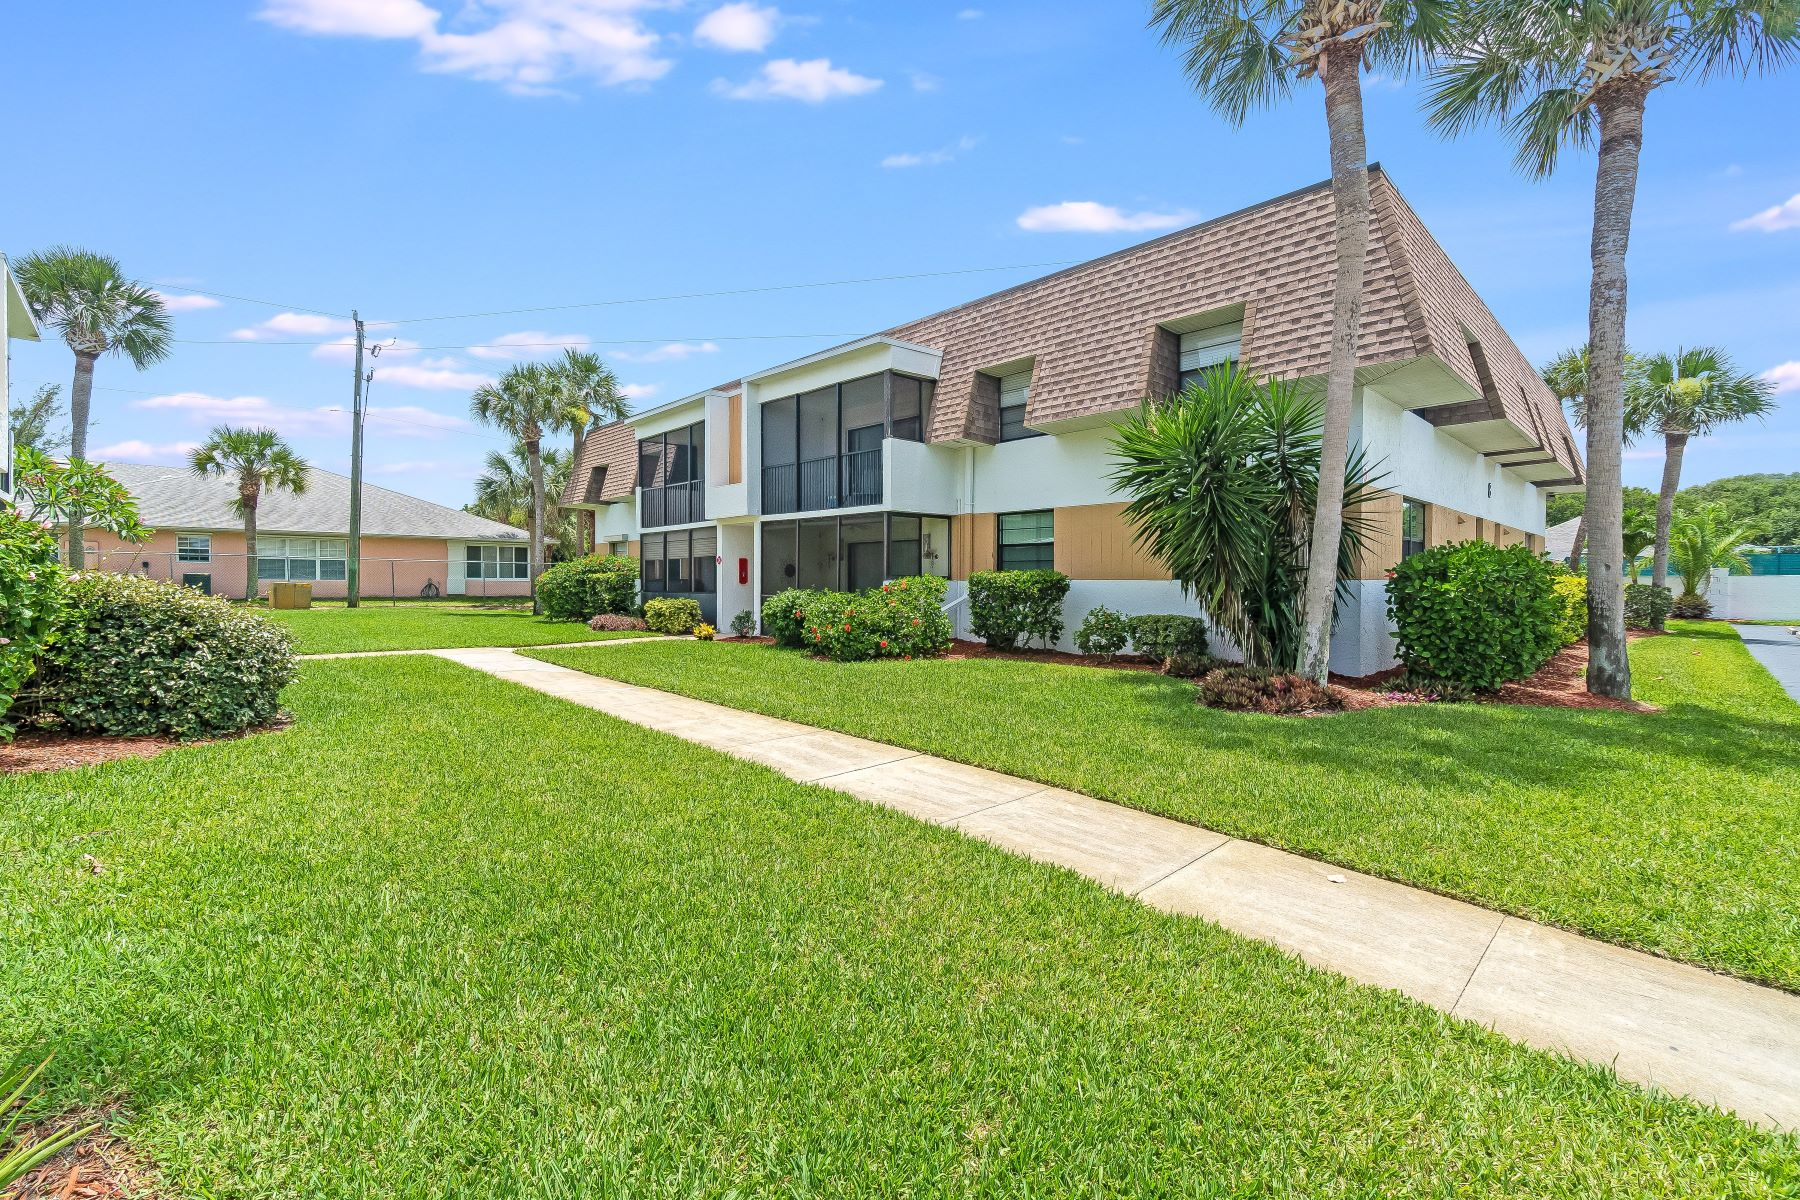 Condominiums for Sale at 2700 N Highway A1a, #8-102, Indialantic, FL 2700 N Highway A1a, 8-102 Indialantic, Florida 32903 United States